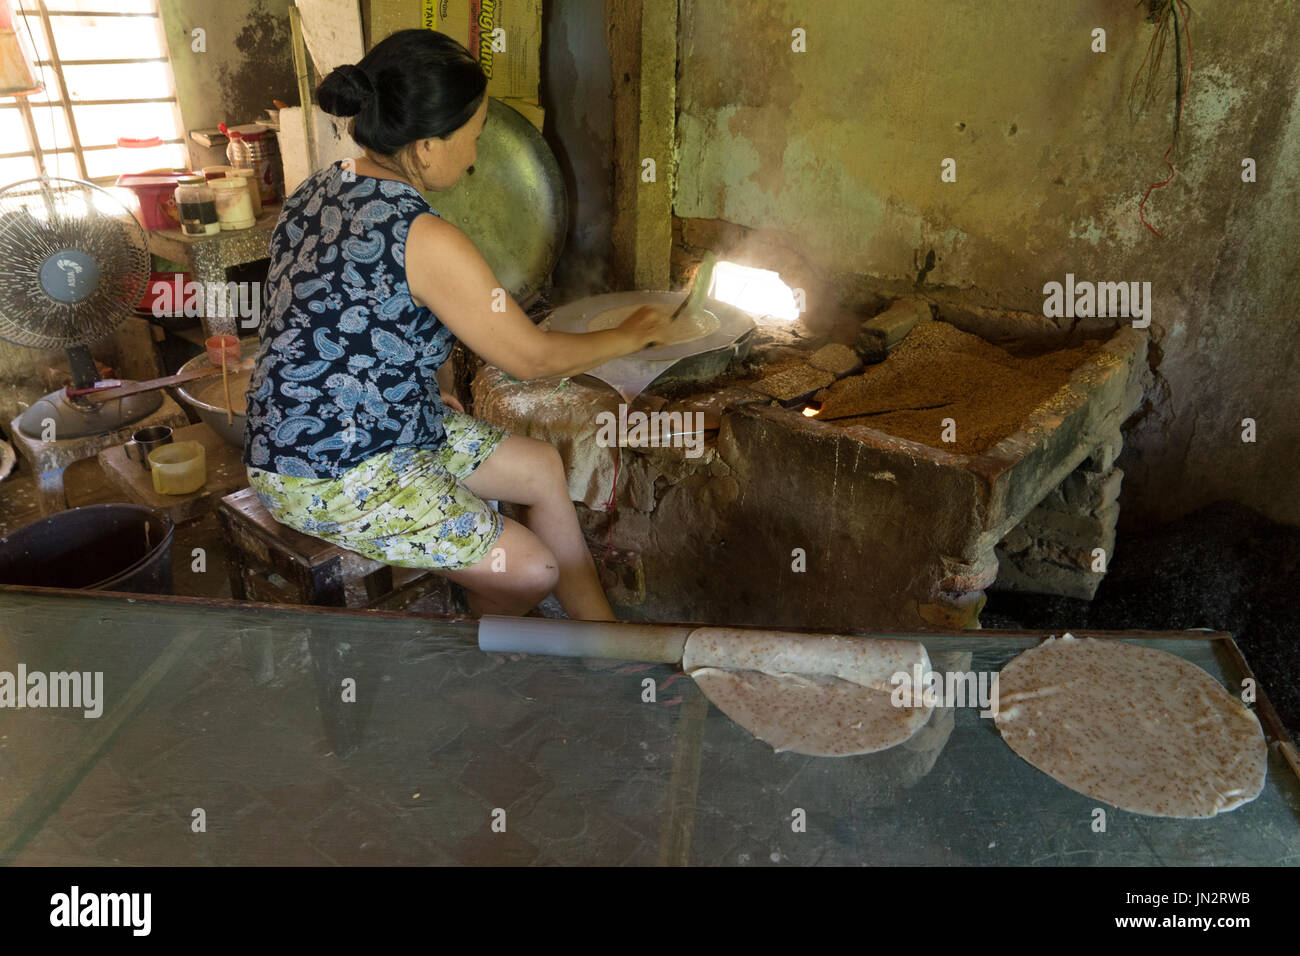 Rural Vietnamese woman cooking rice paste over a wood stove to make rice noodles and crackers - Stock Image